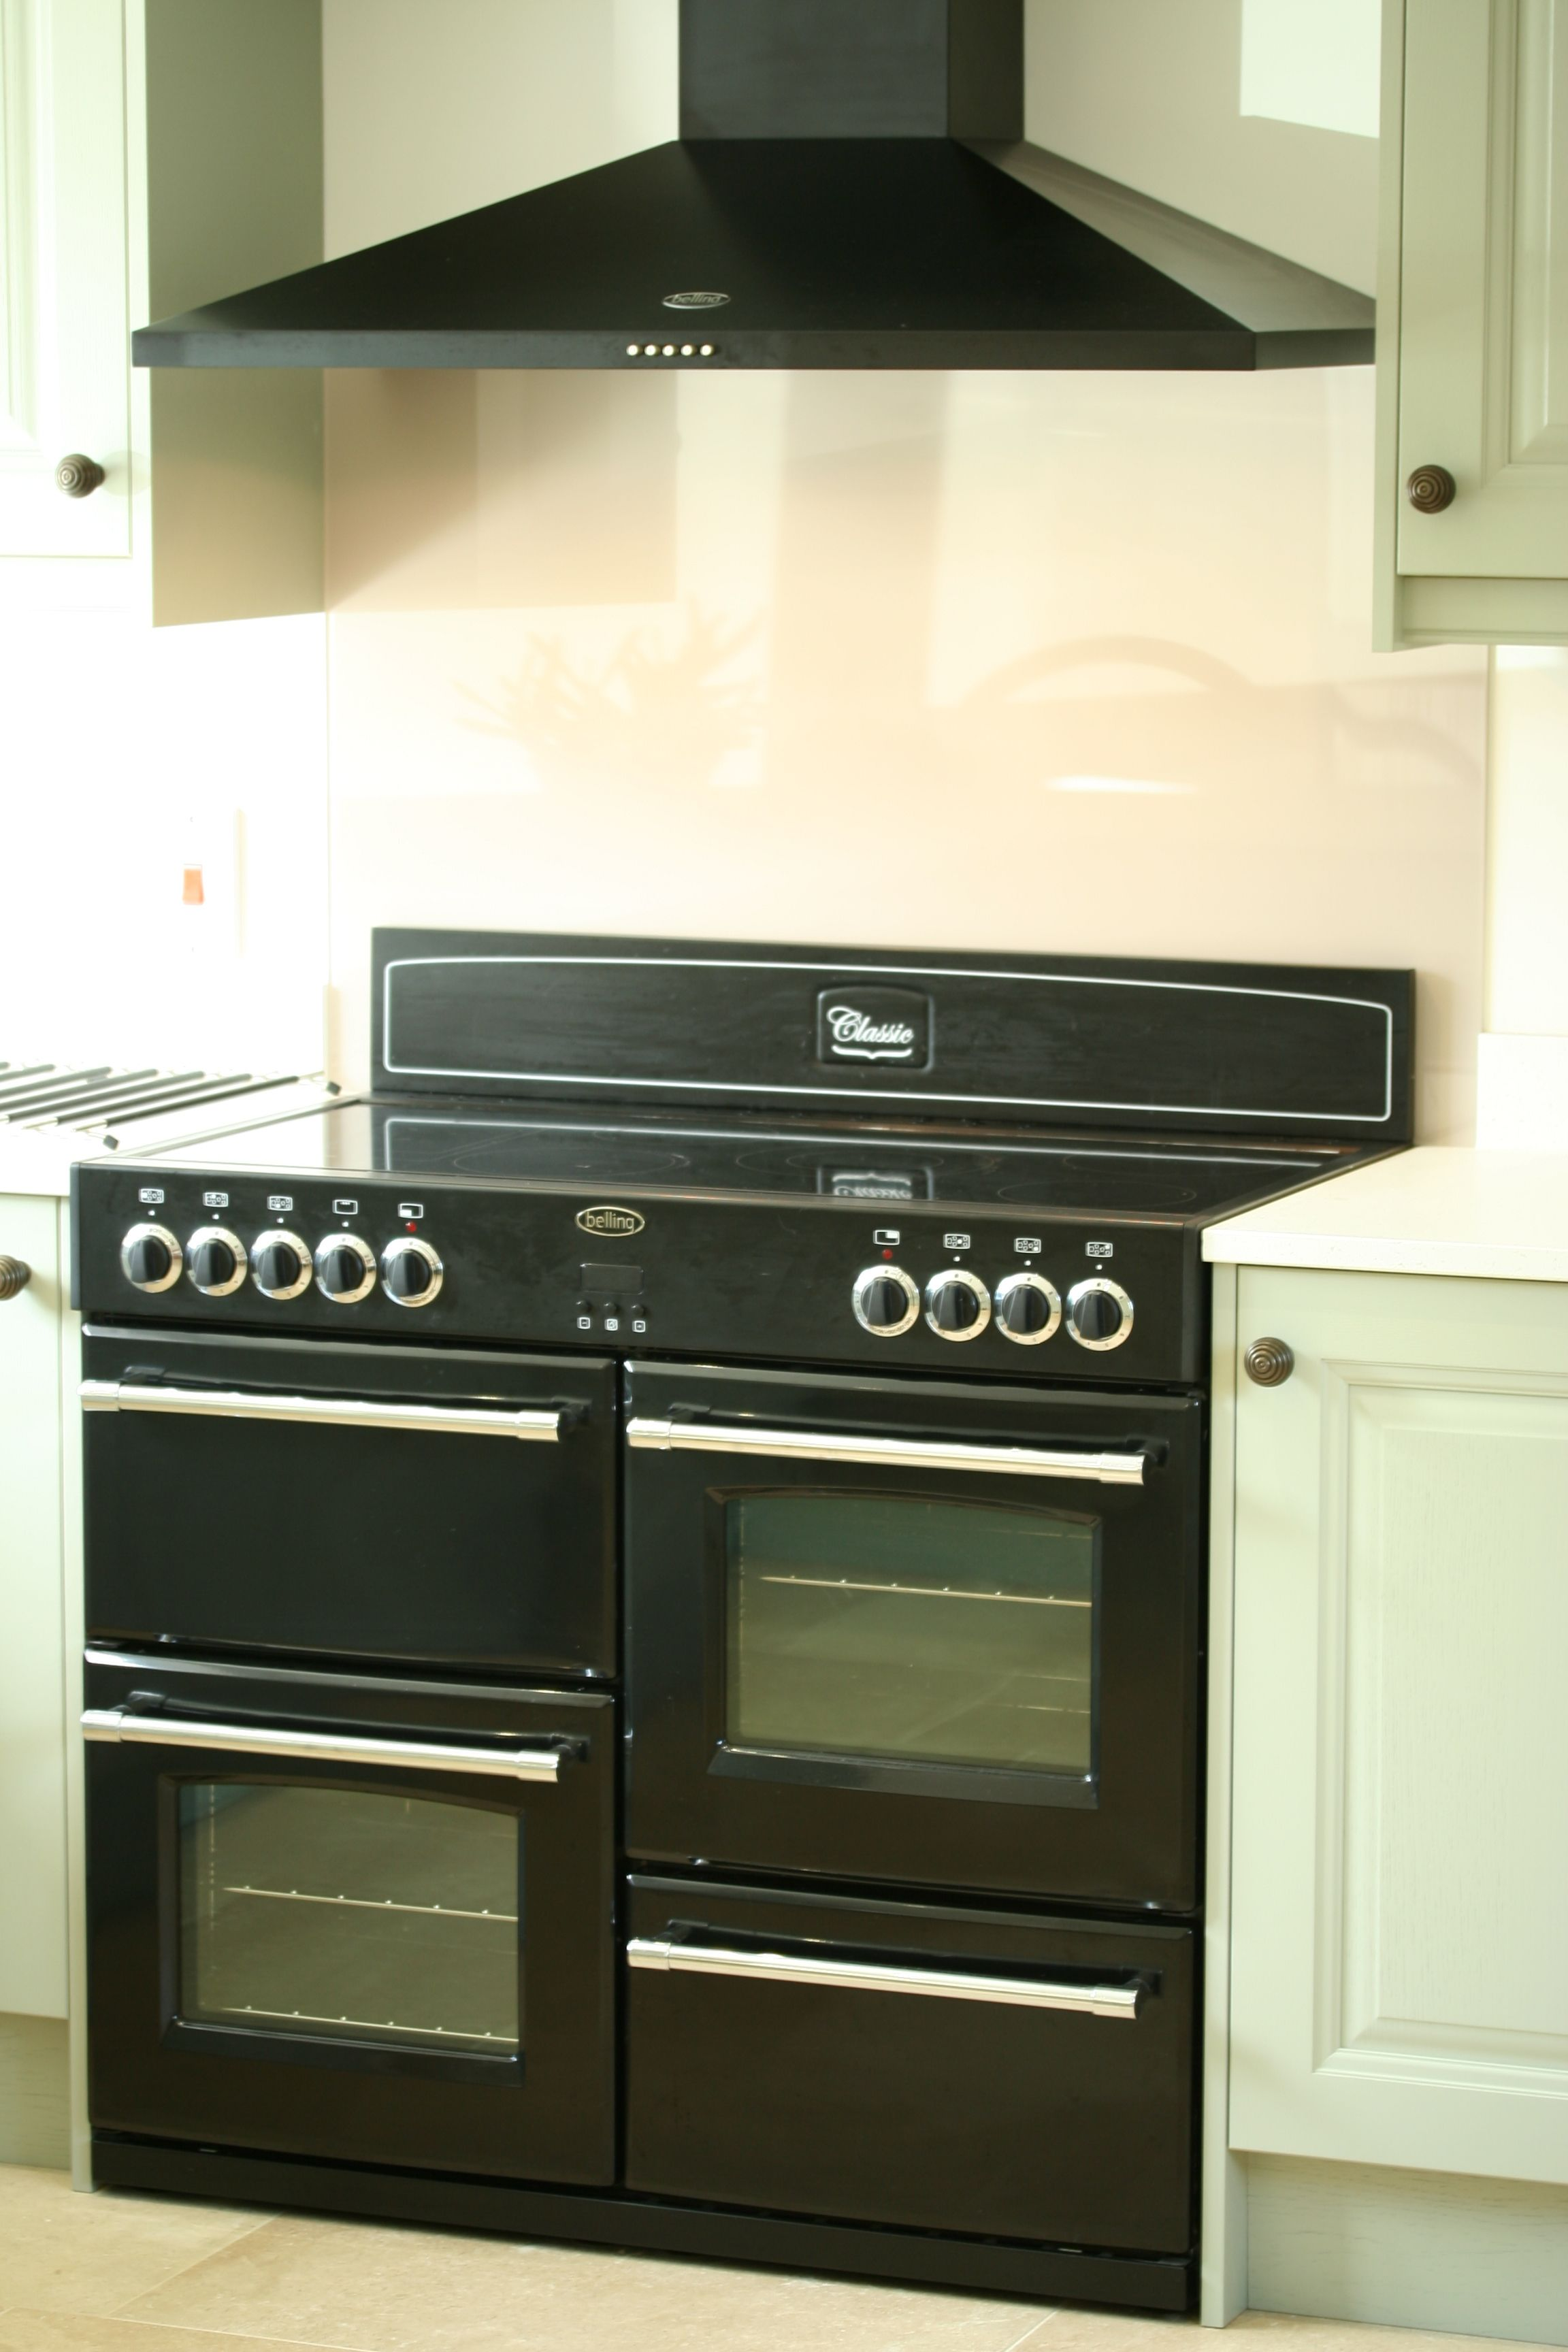 Uncategorized Belling Kitchen Appliances belling classic 100dft range cooker in hot jalapeno kitchen black chimney hood